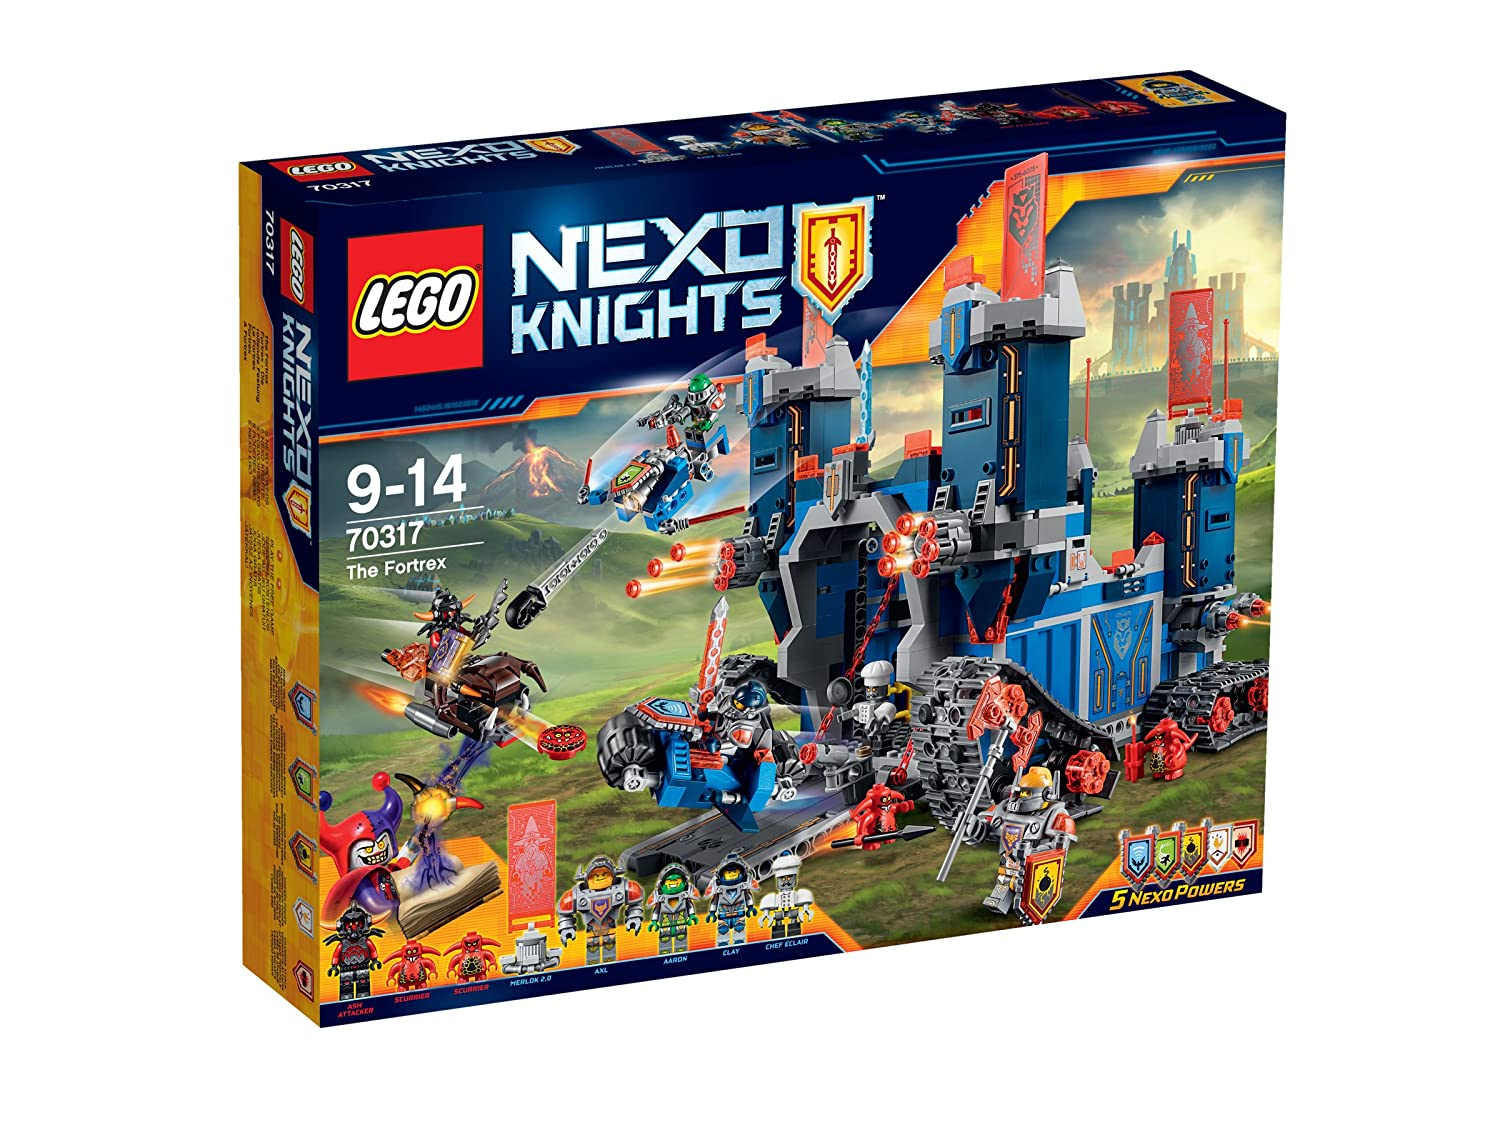 Offerta: Lego Nexo Knights - Fortrex (70317) per 69,90€ (invece di 109,99€ [amazon.it]